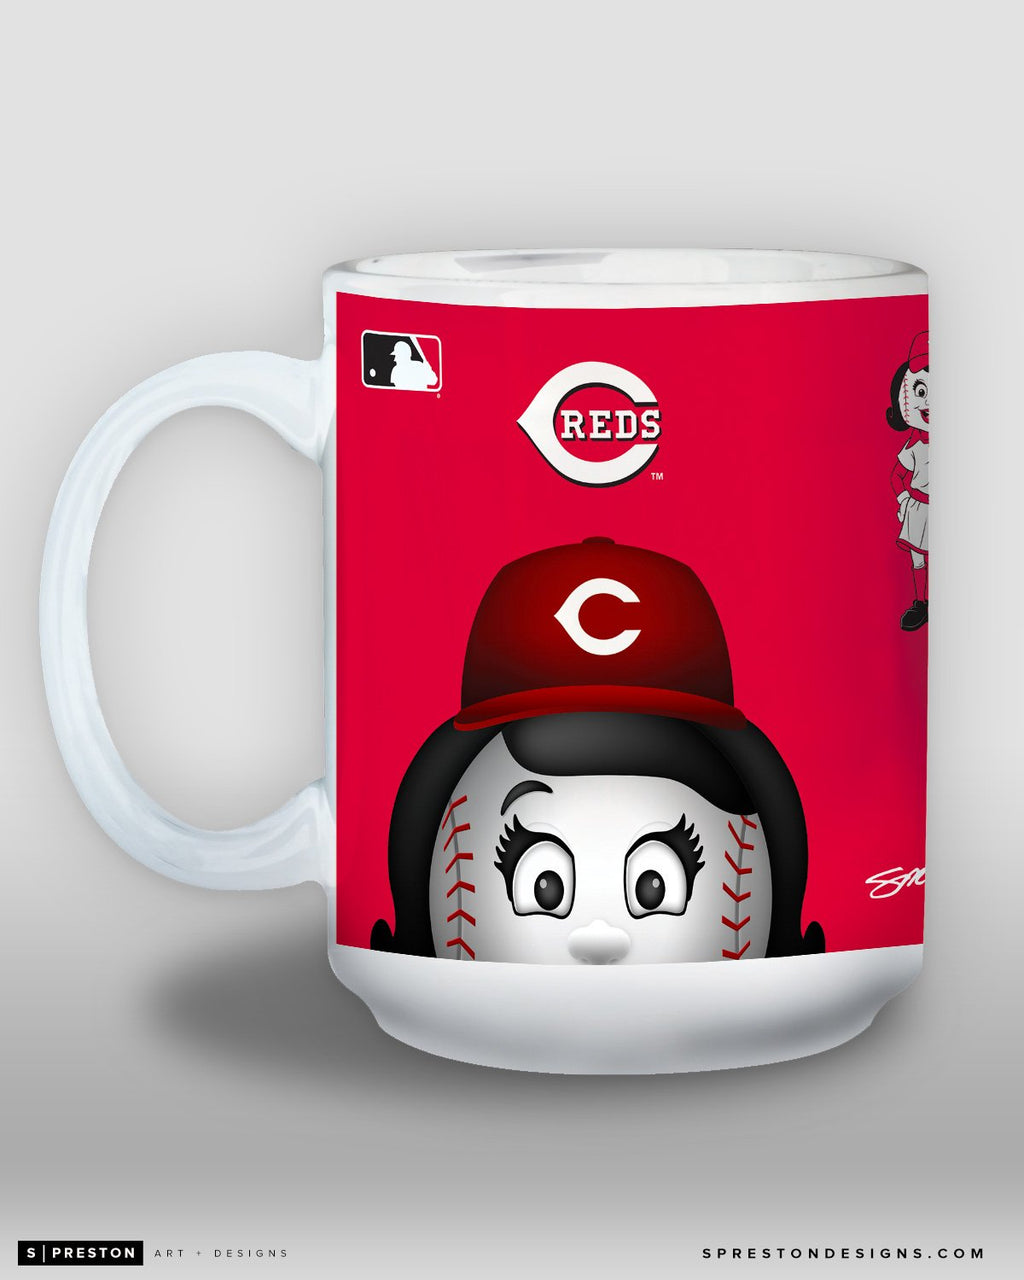 Minimalist Rosie The Red Coffee Mug - MLB Licensed - Cincinnati Reds Mascot